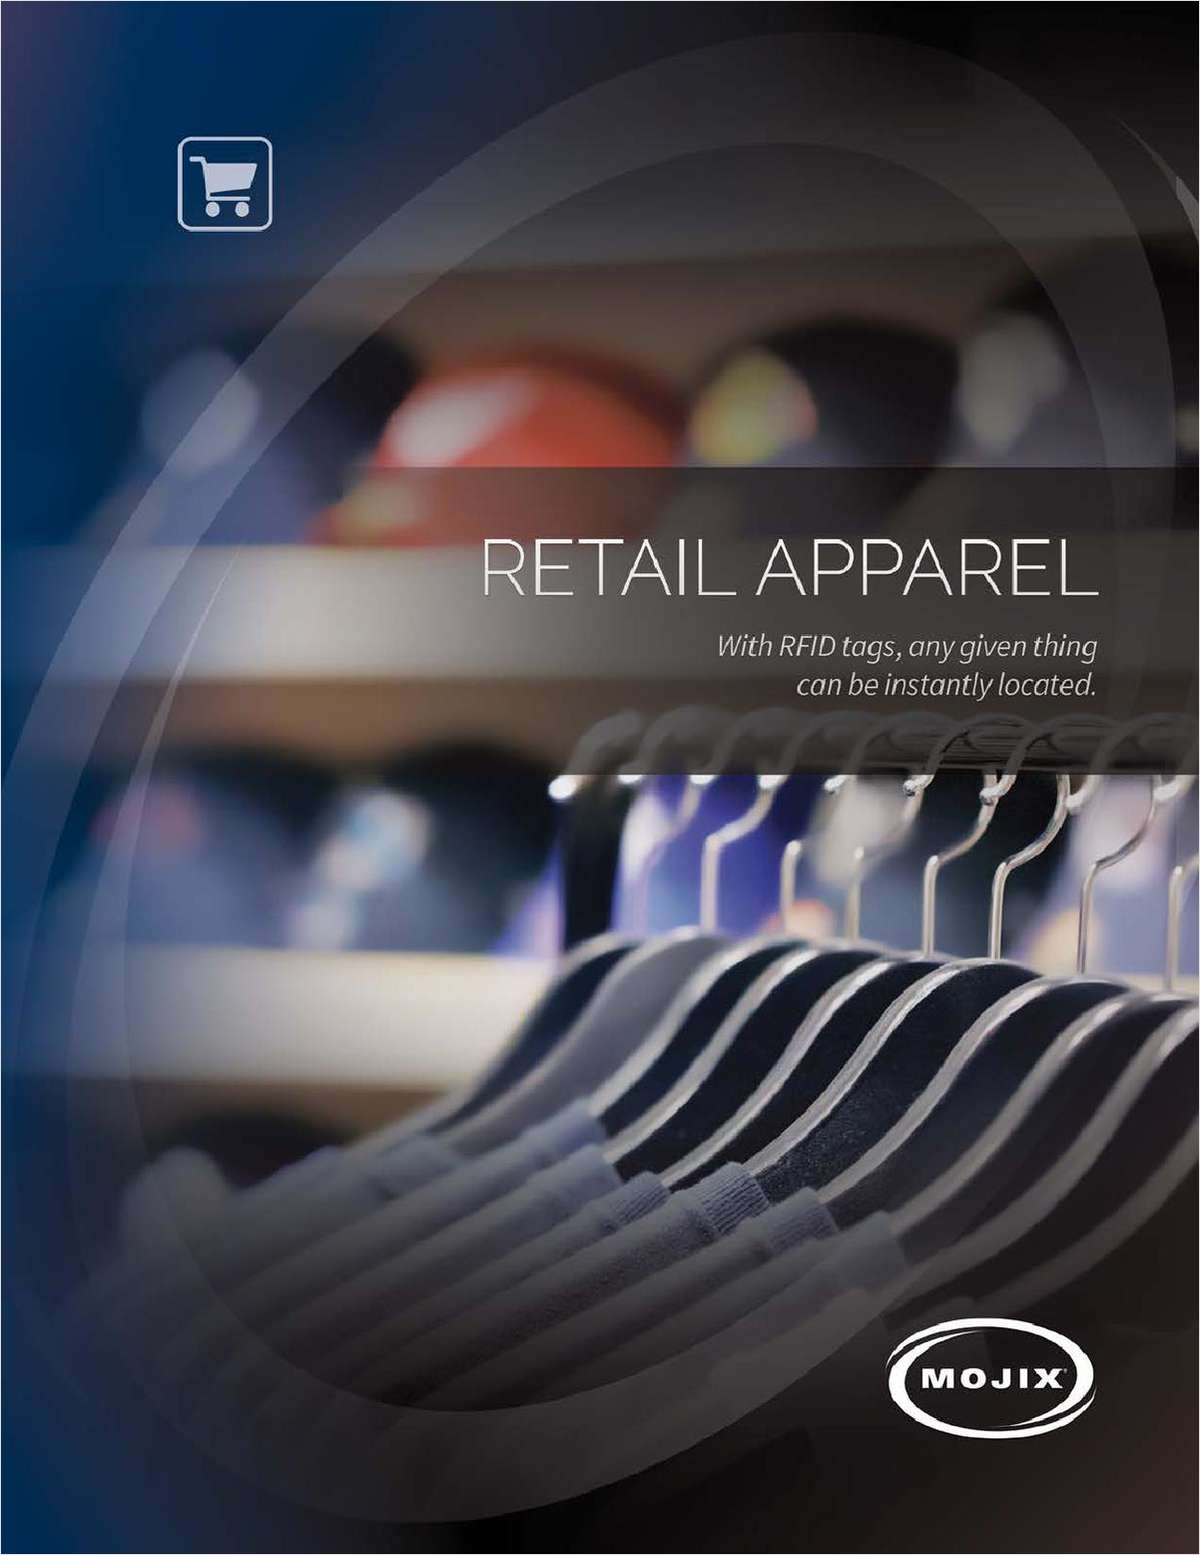 Retail Apparel with RFID Inventory Management Solutions -- Maximizing Sales, Minimizing Losses, Full Visibility in Real-Time